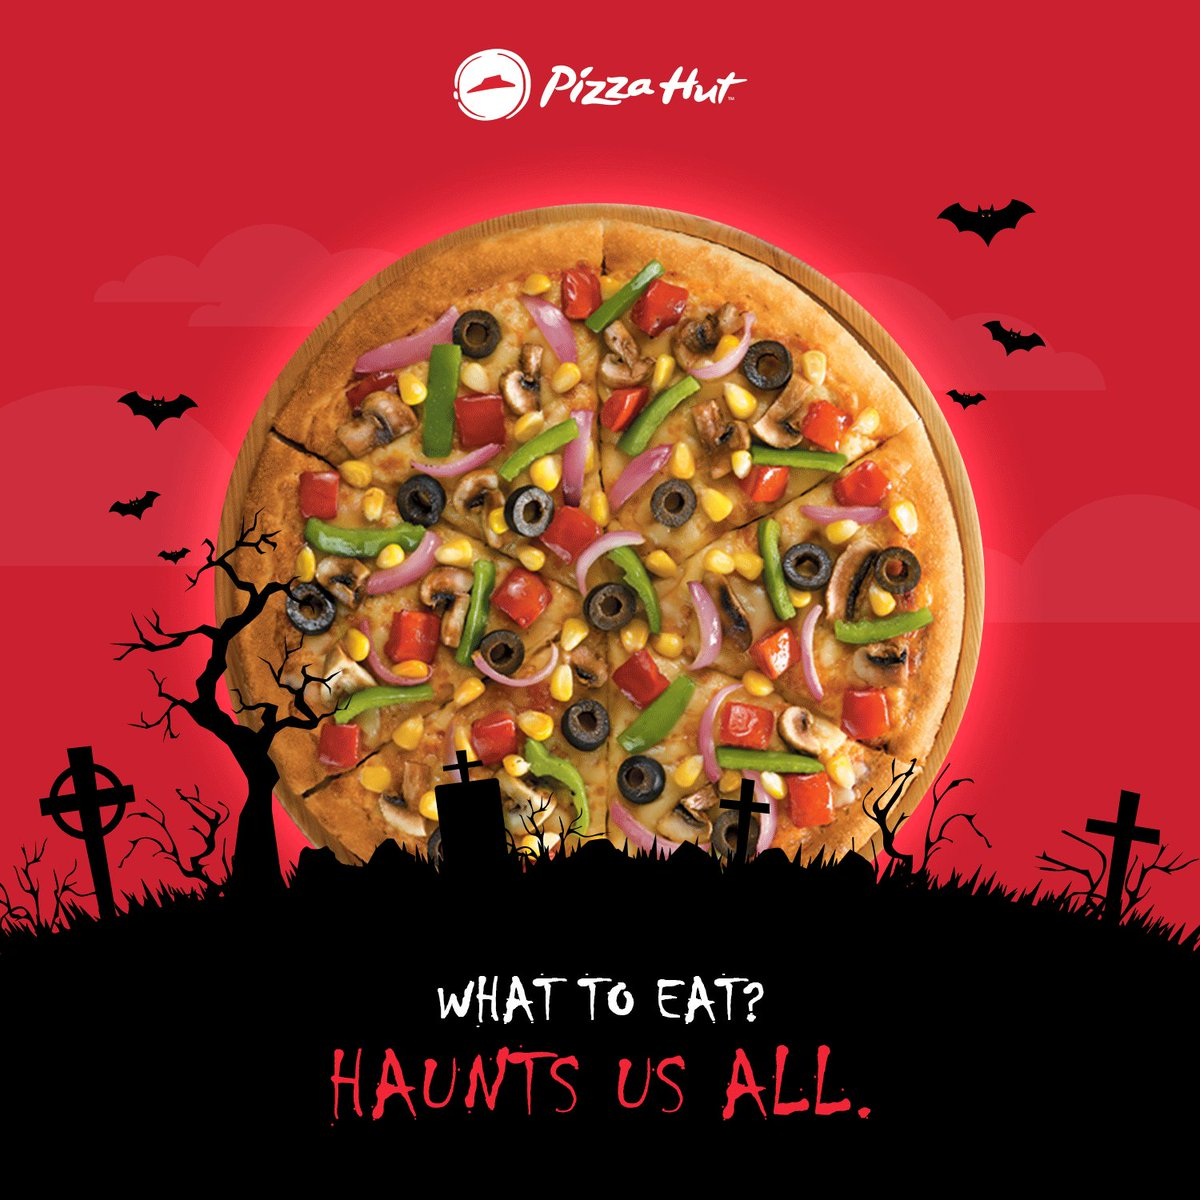 The tastiest treat awaits you HappyHalloween https t.co qabBnde5FW